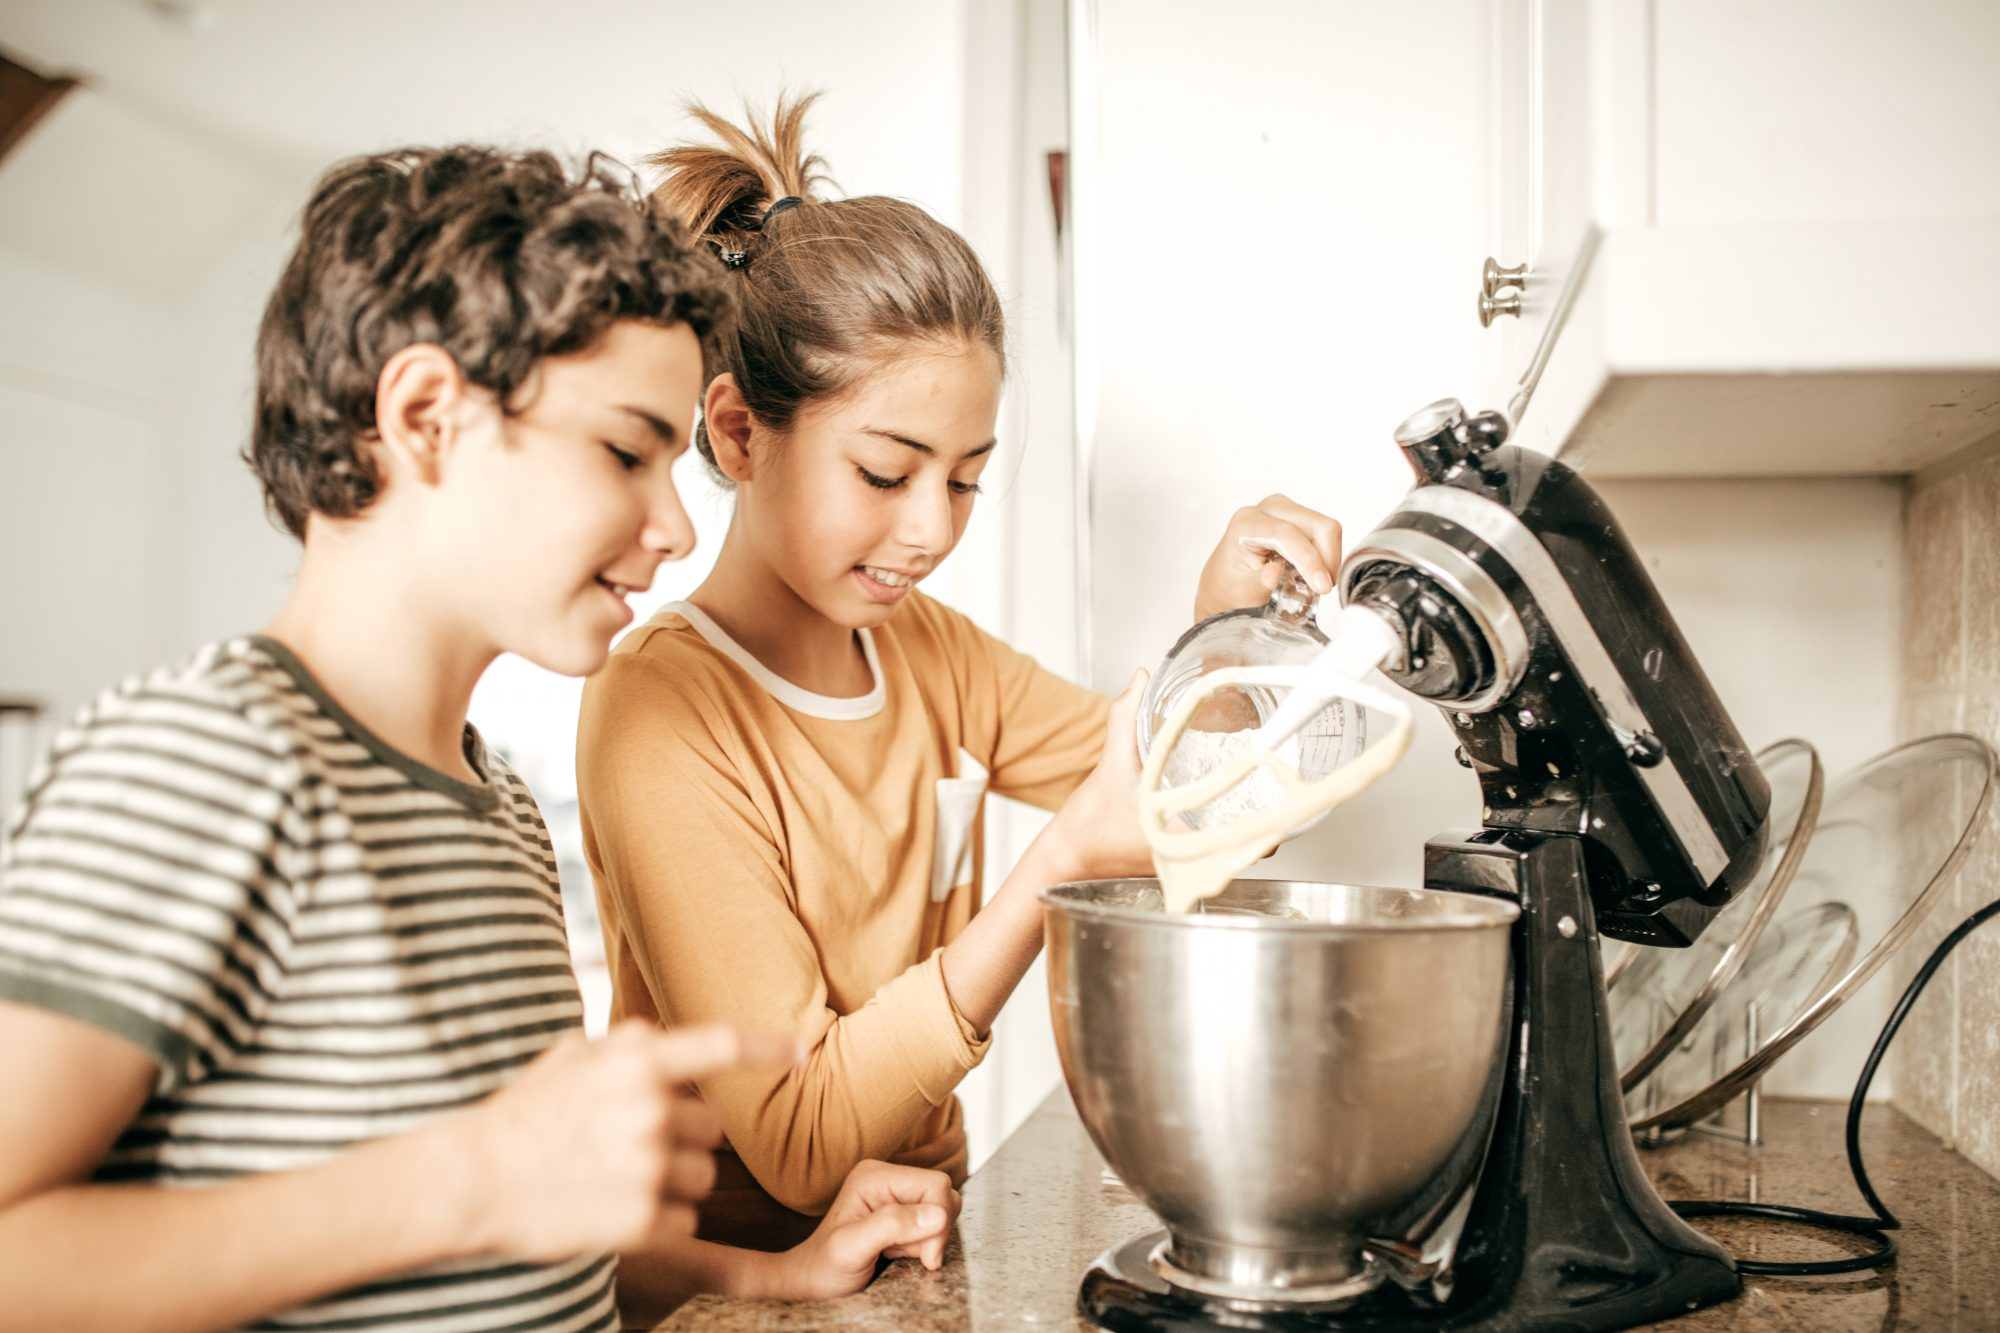 050620_Kids with Stand Mixer